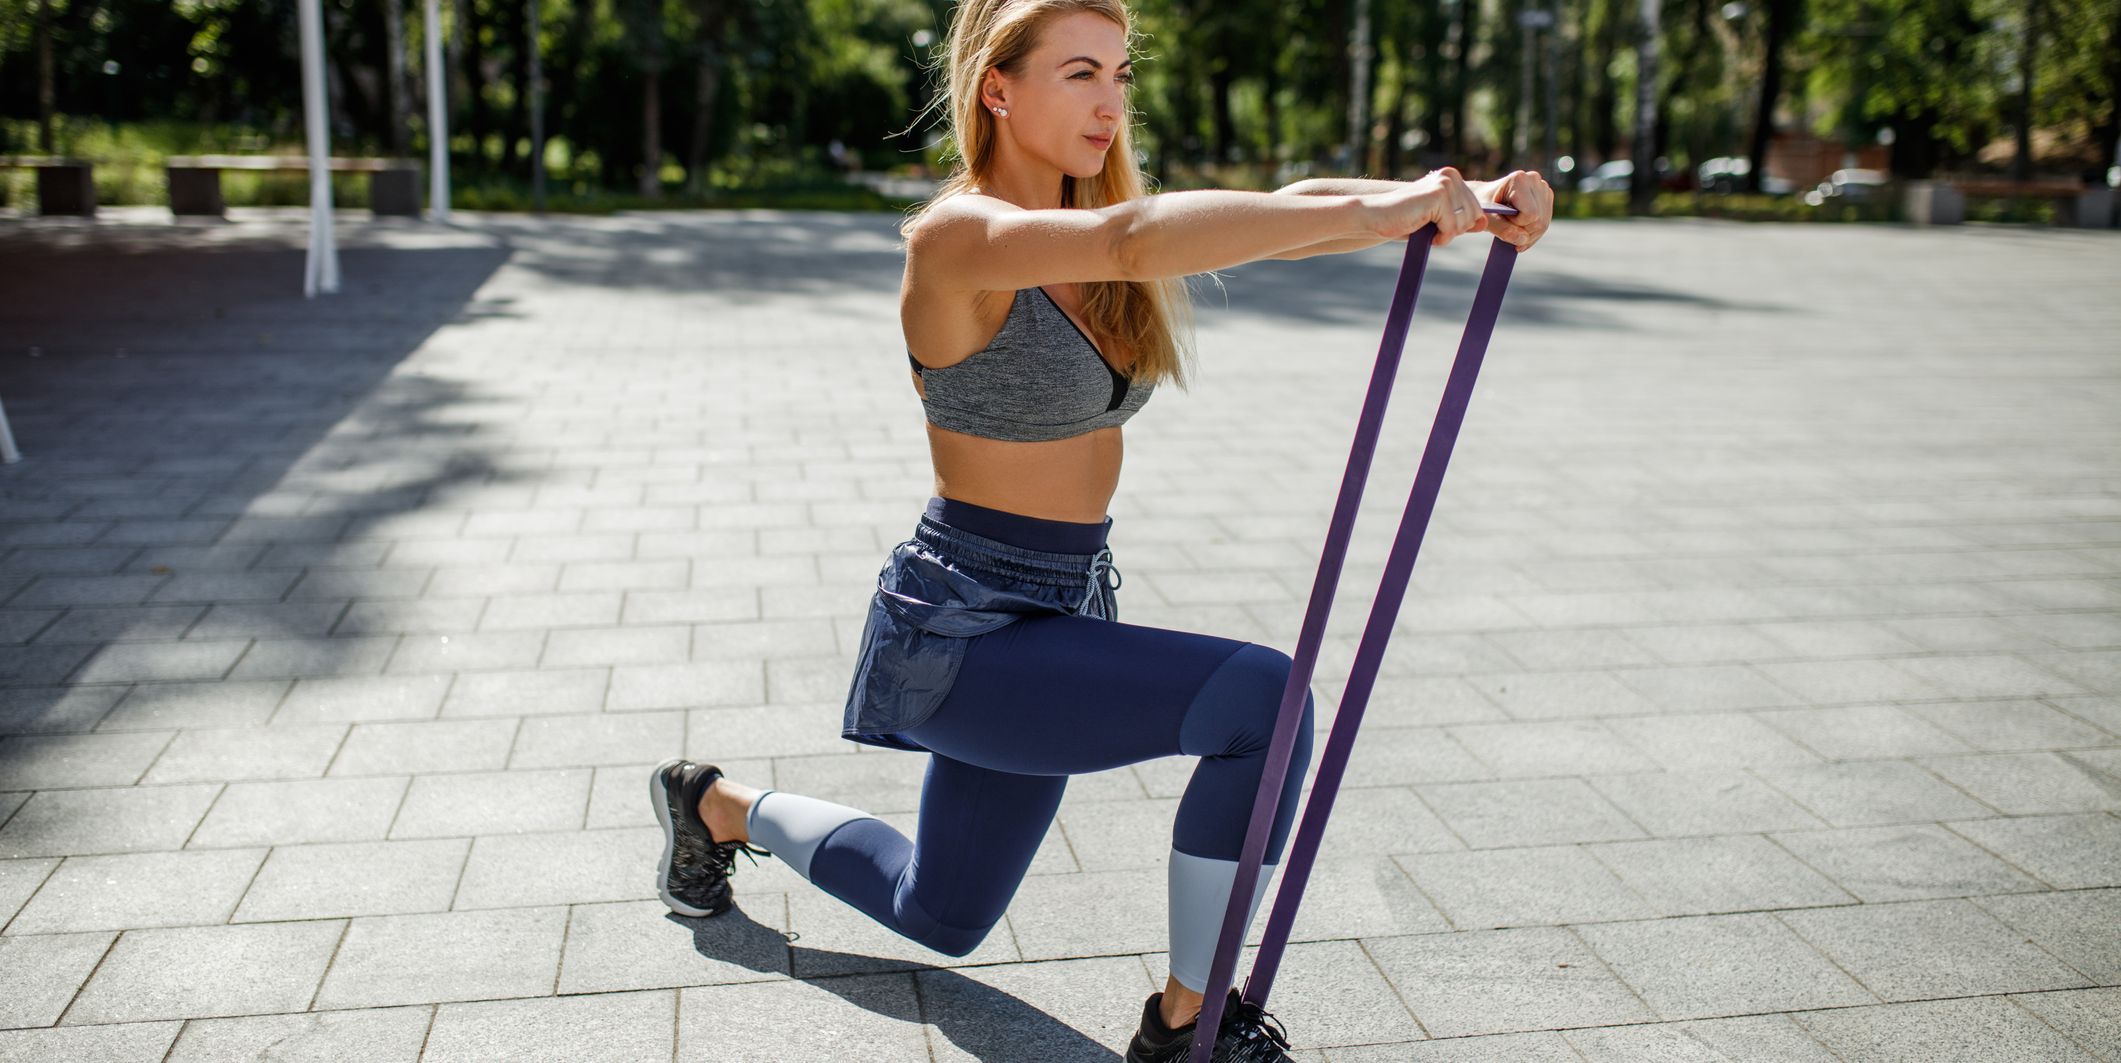 12 Resistance Band Exercises for Stronger Legs, Arms, and Abs